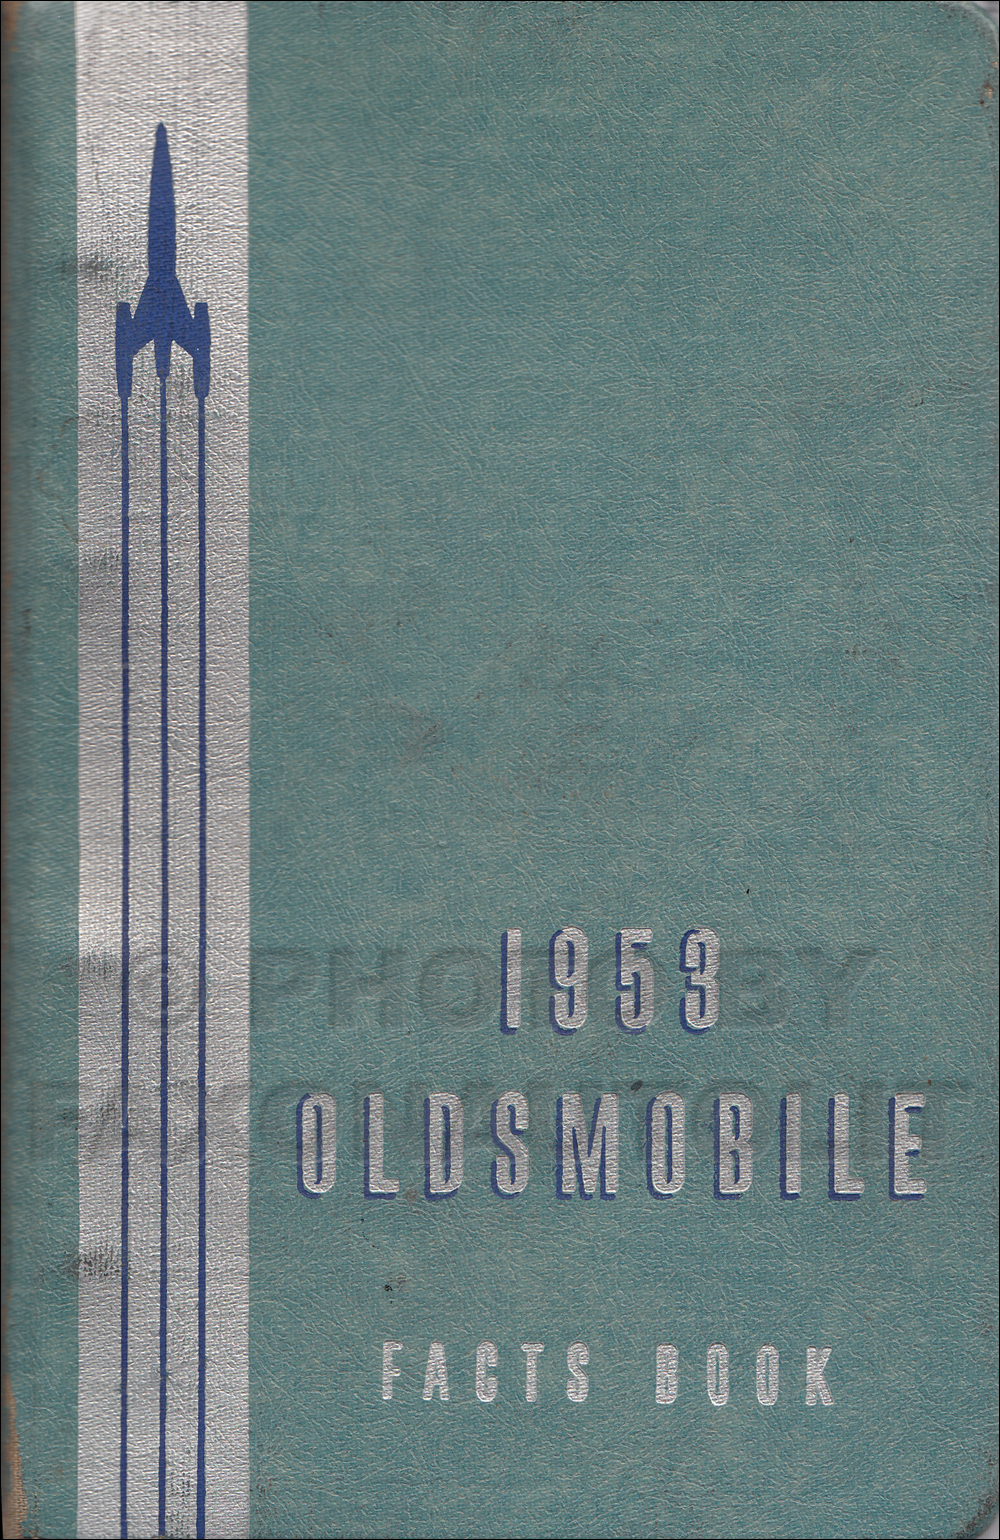 1953 Oldsmobile Facts Book Original